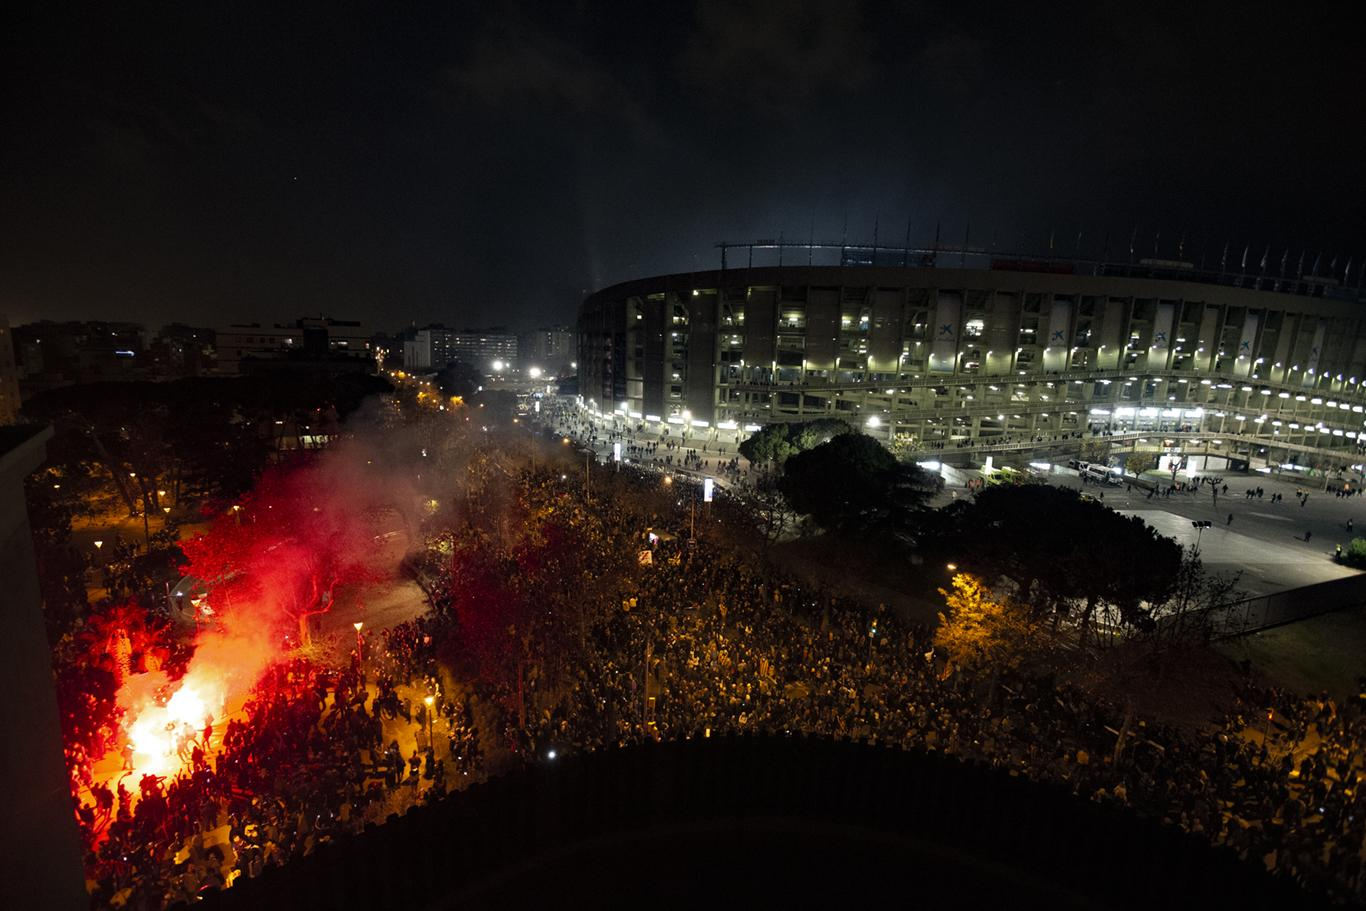 Catalan pro-independence demonstrators gather outside the Camp Nou stadium ahead of a Spanish La Liga soccer match between Barcelona and Real Madrid in Barcelona, Spain, Wednesday, Dec. 18, 2019. Thousands of police and private security personnel were deployed Wednesday in and around Barcelona's Camp Nou stadium to ensure that a protest over Catalonia's separatist movement does not disrupt one of the world's most-watched soccer matches. (AP Photo/Joan Mateu)